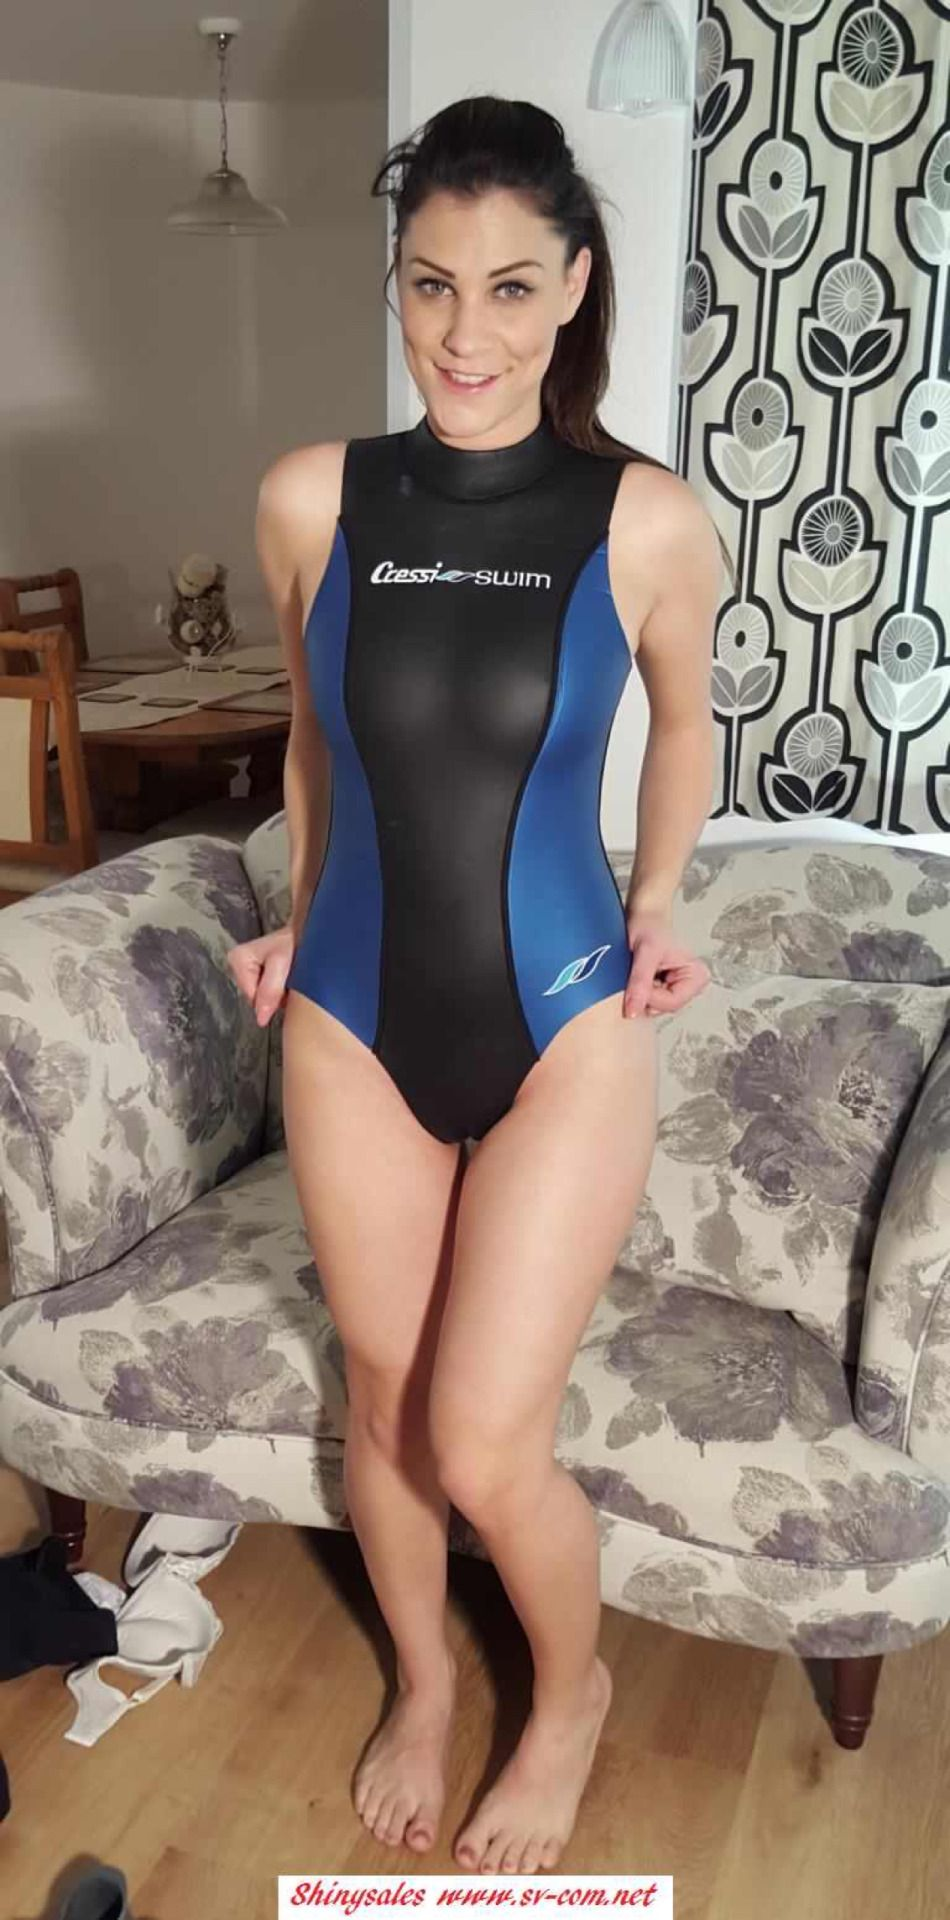 2d7c7abee761b http://onepieceswimsuit10.tumblr.com/image/133916724339 Womens Wetsuit,